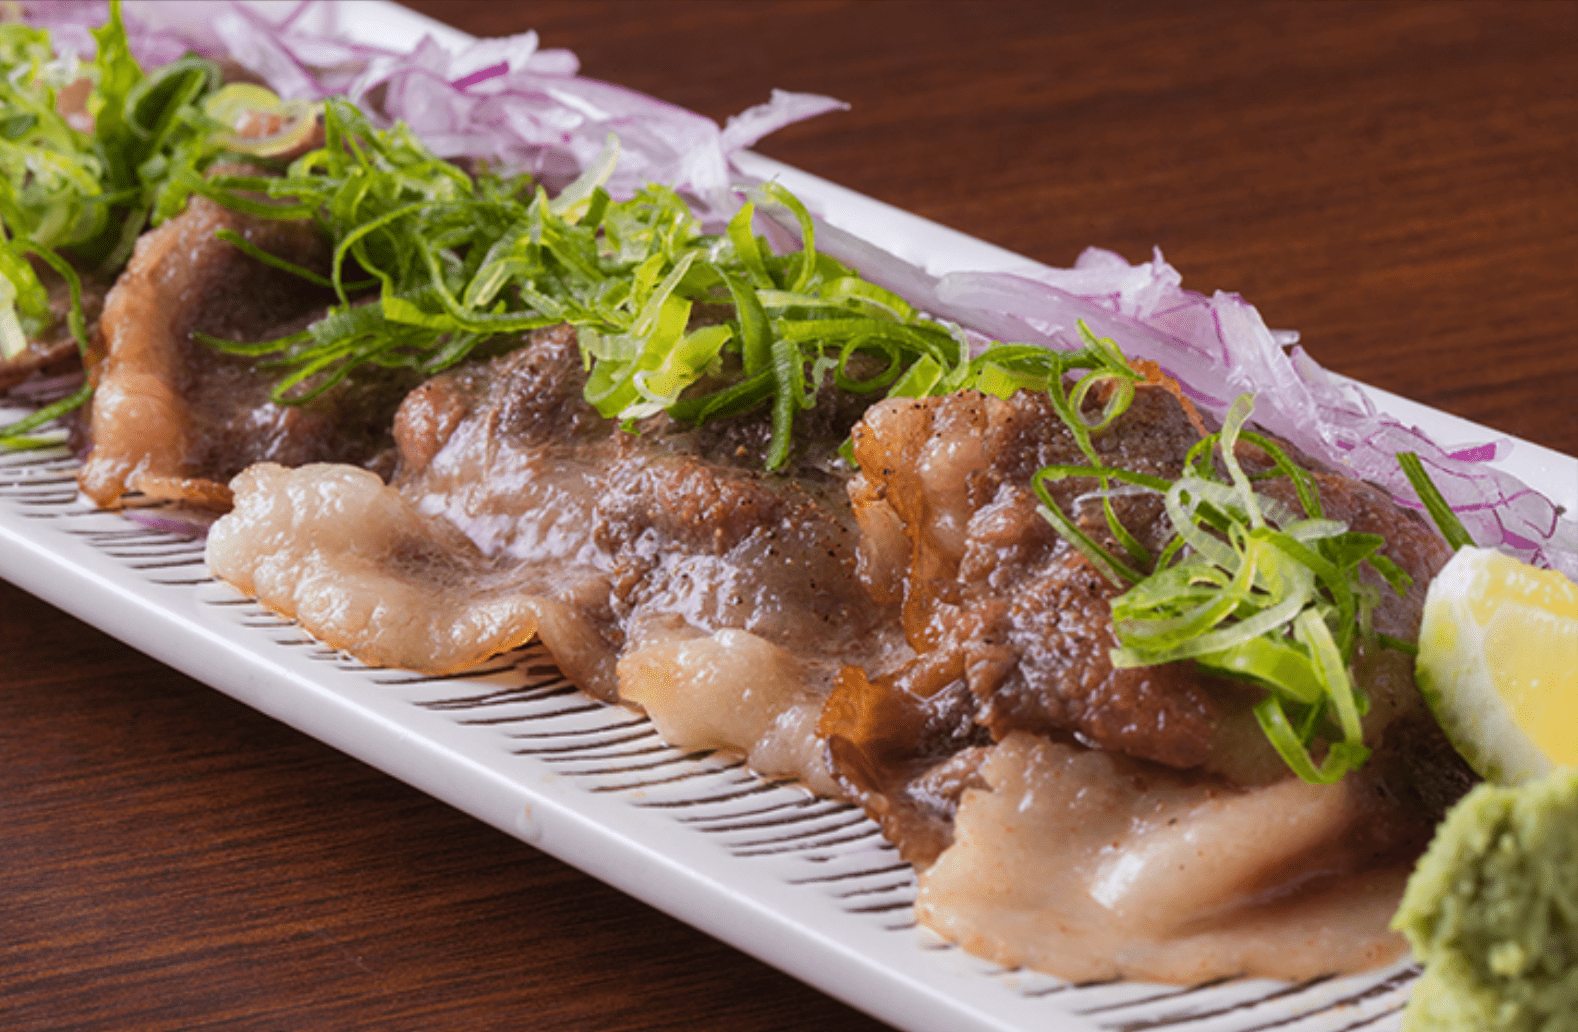 Grilled pieces of beef garnished with scallions and red onion